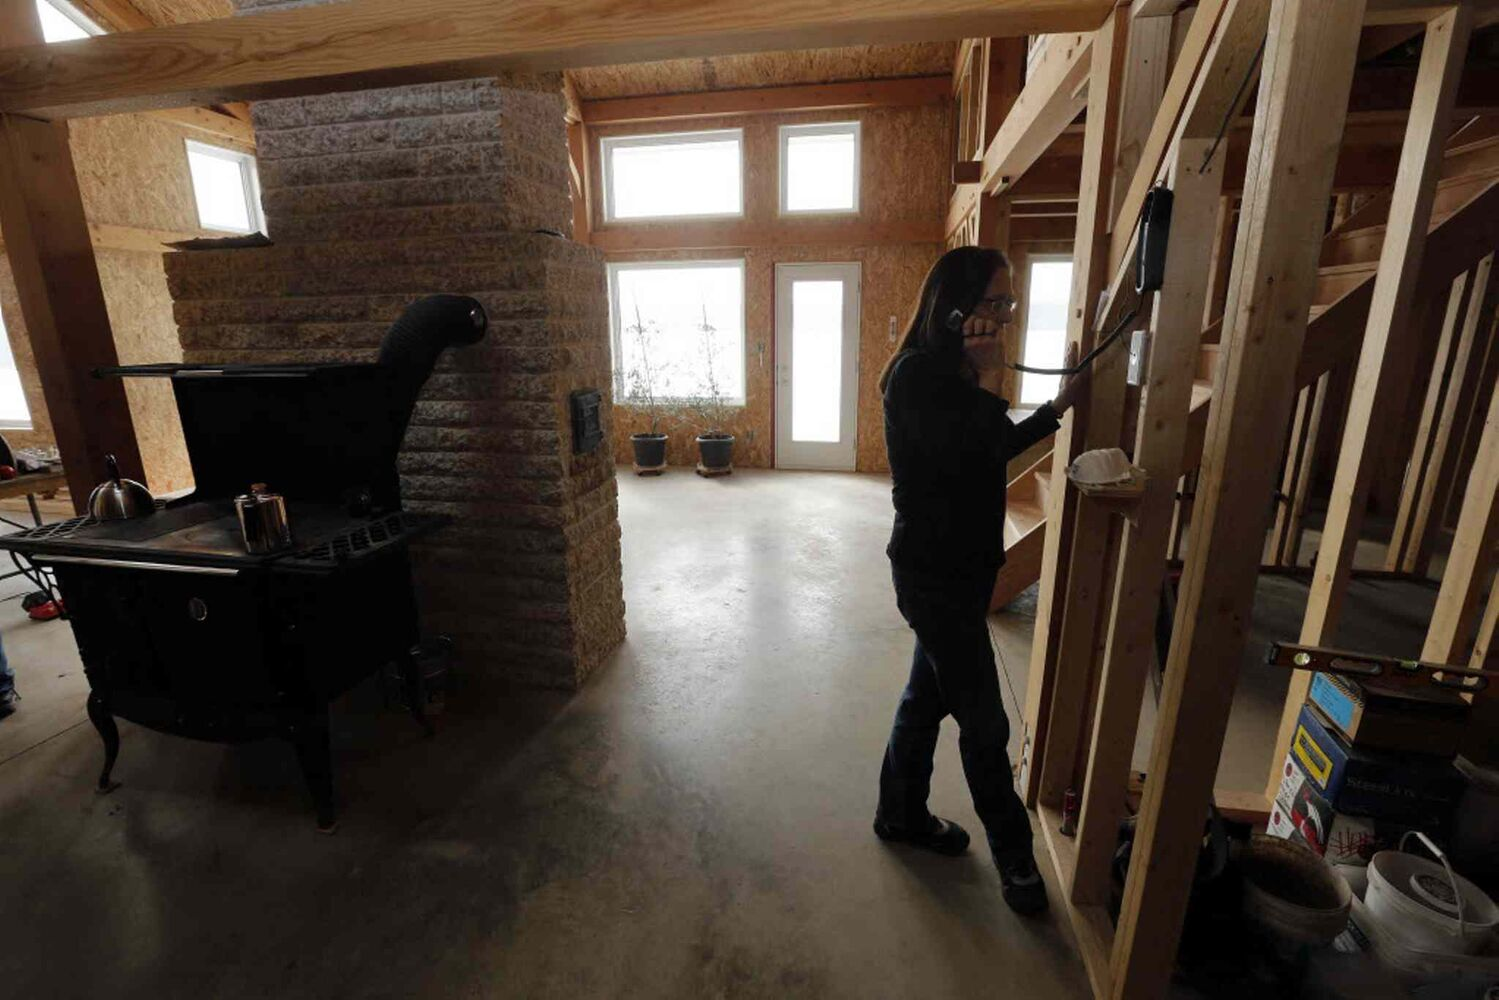 Bev Eert answers phone while coffee percolates on the wood stove in the unfinished solar home. (KEN GIGLIOTTI / WINNIPEG FREE PRESS)